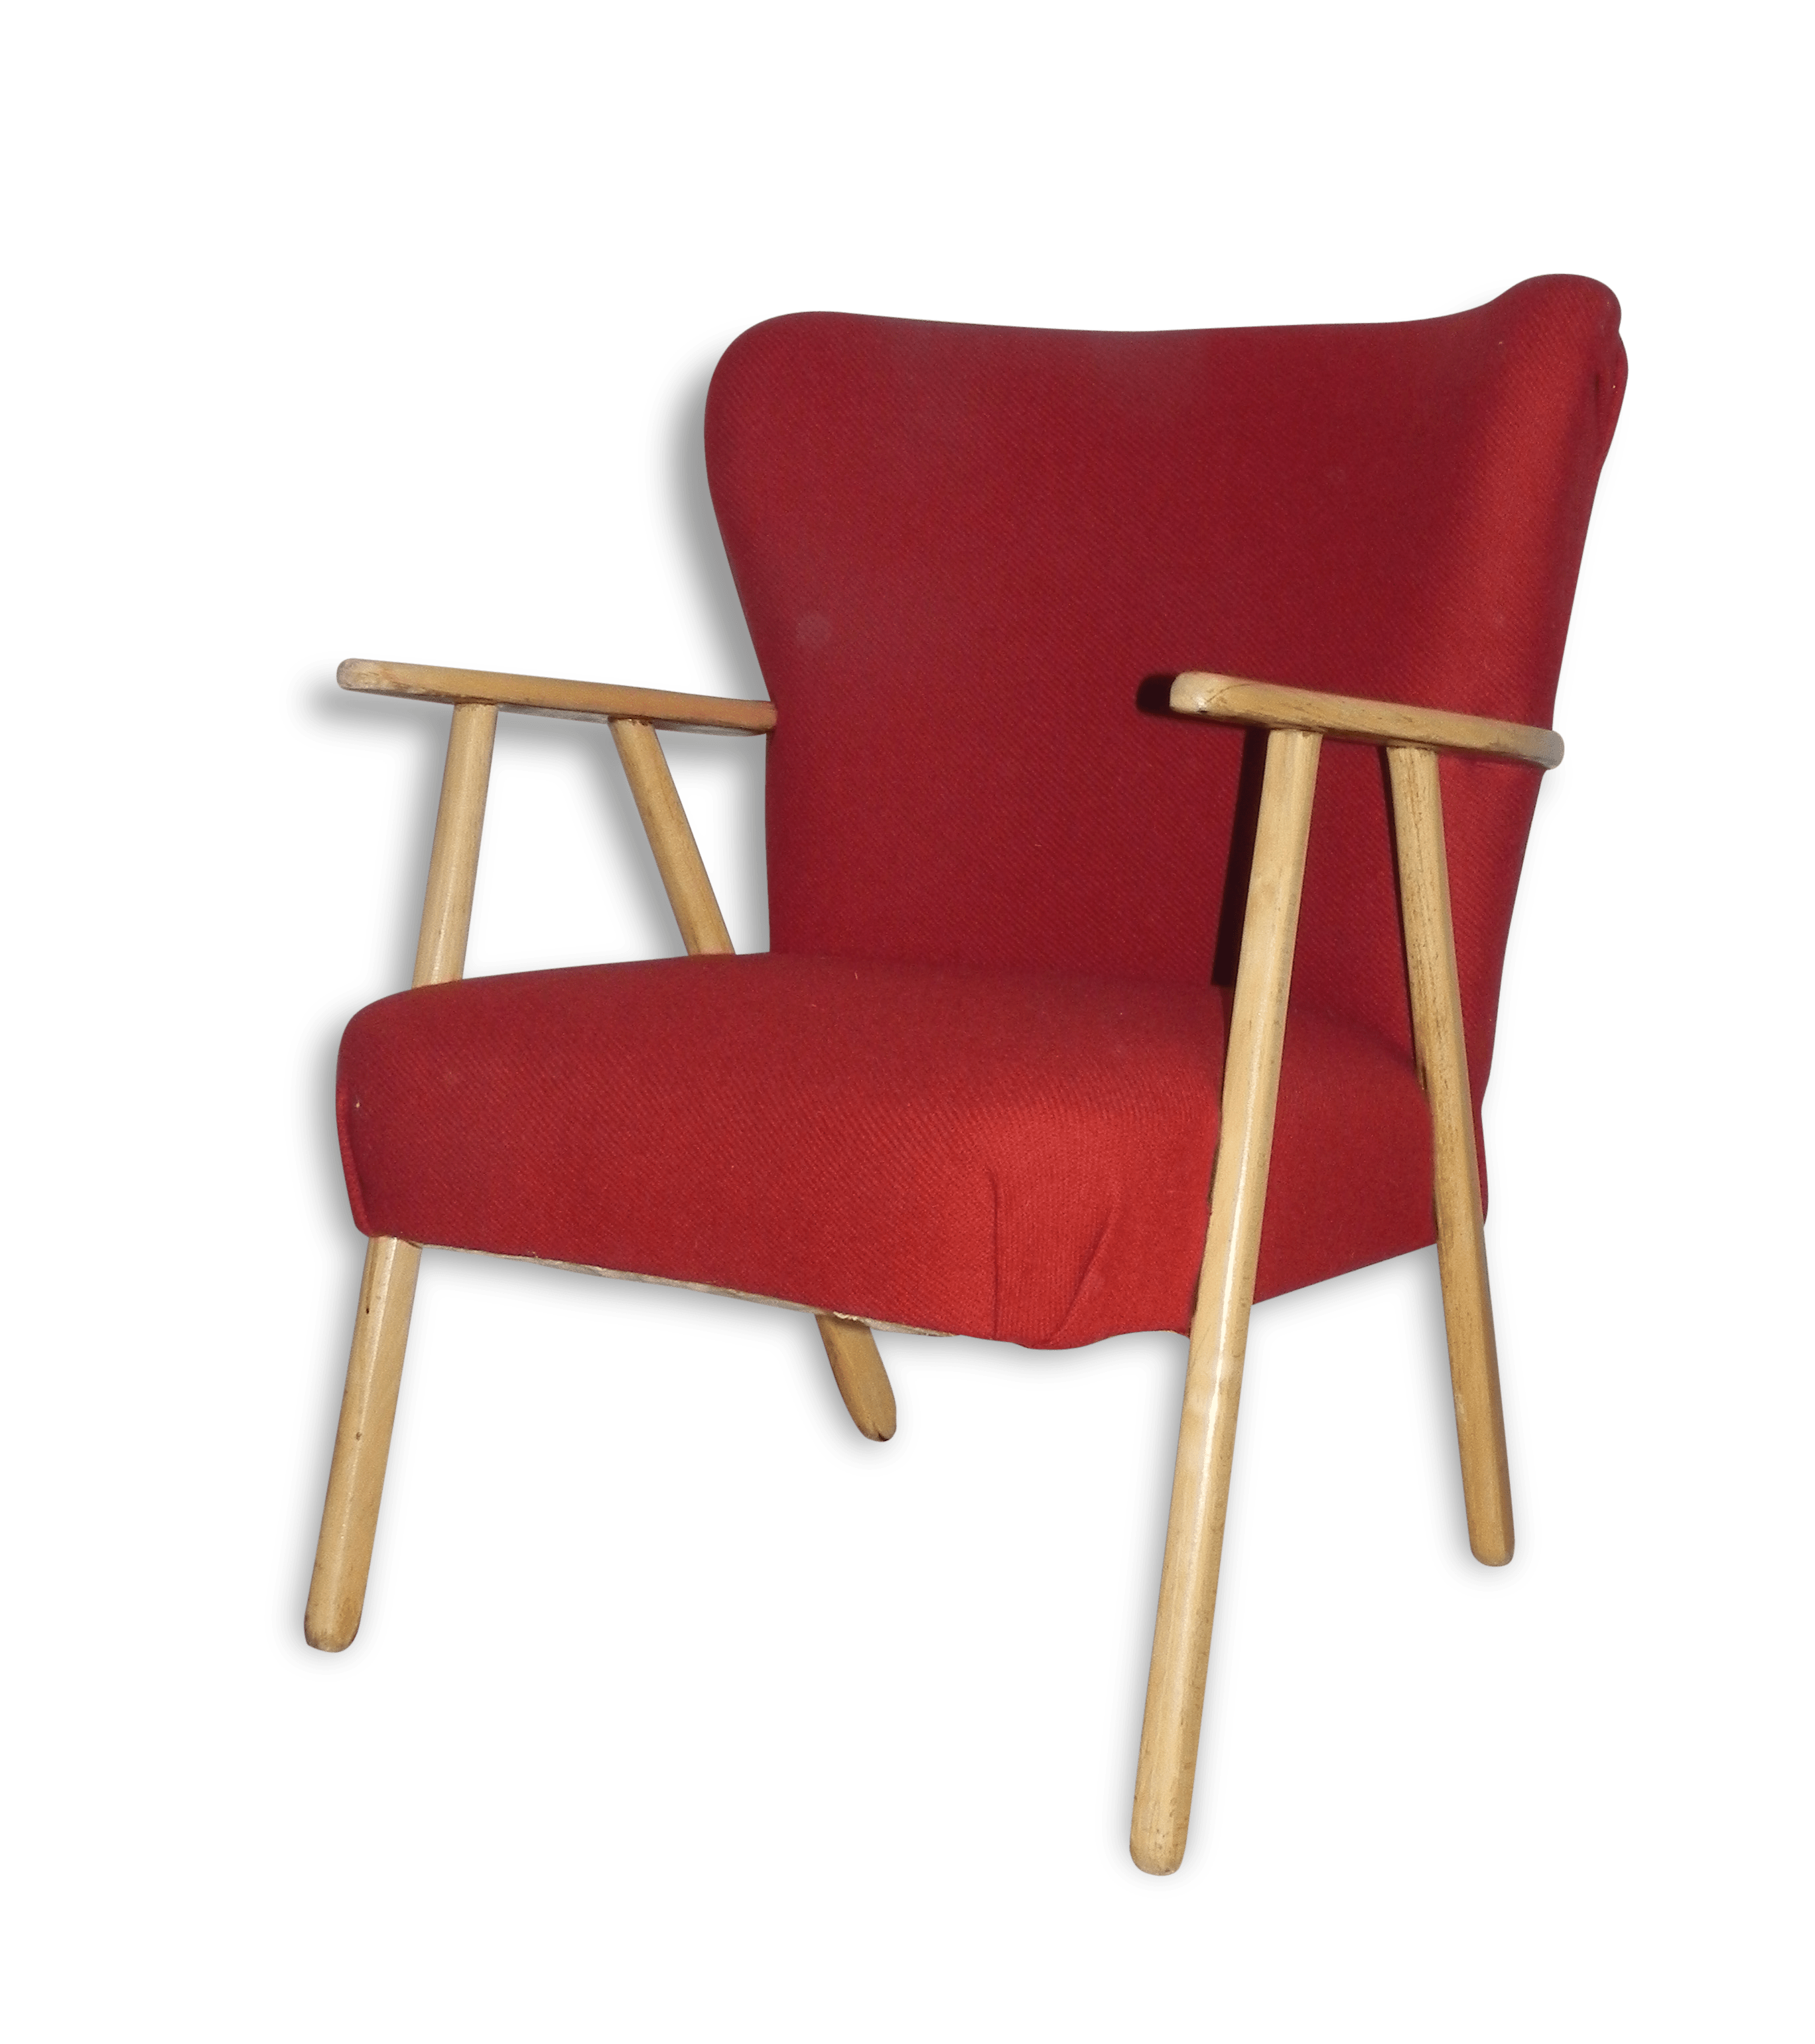 Camif Fauteuils Cuir Simple Fauteuil Cocktail Scandinave With Lit Gigogne